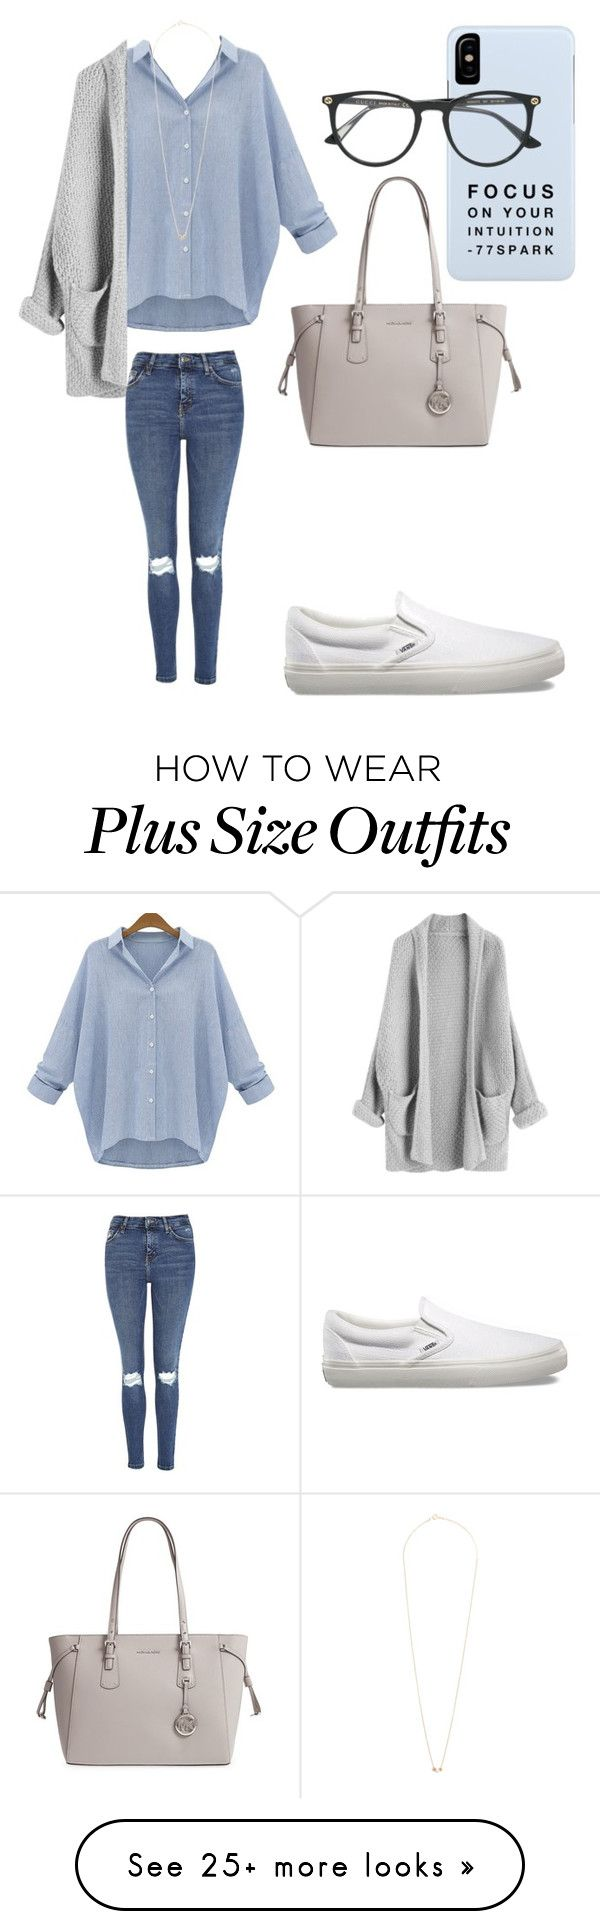 """Focus on your Intuition"" by sarahfohlen on Polyvore featuring Topshop, Vans, Michael Kors, Gucci, Dogeared, Fall and 2k17"